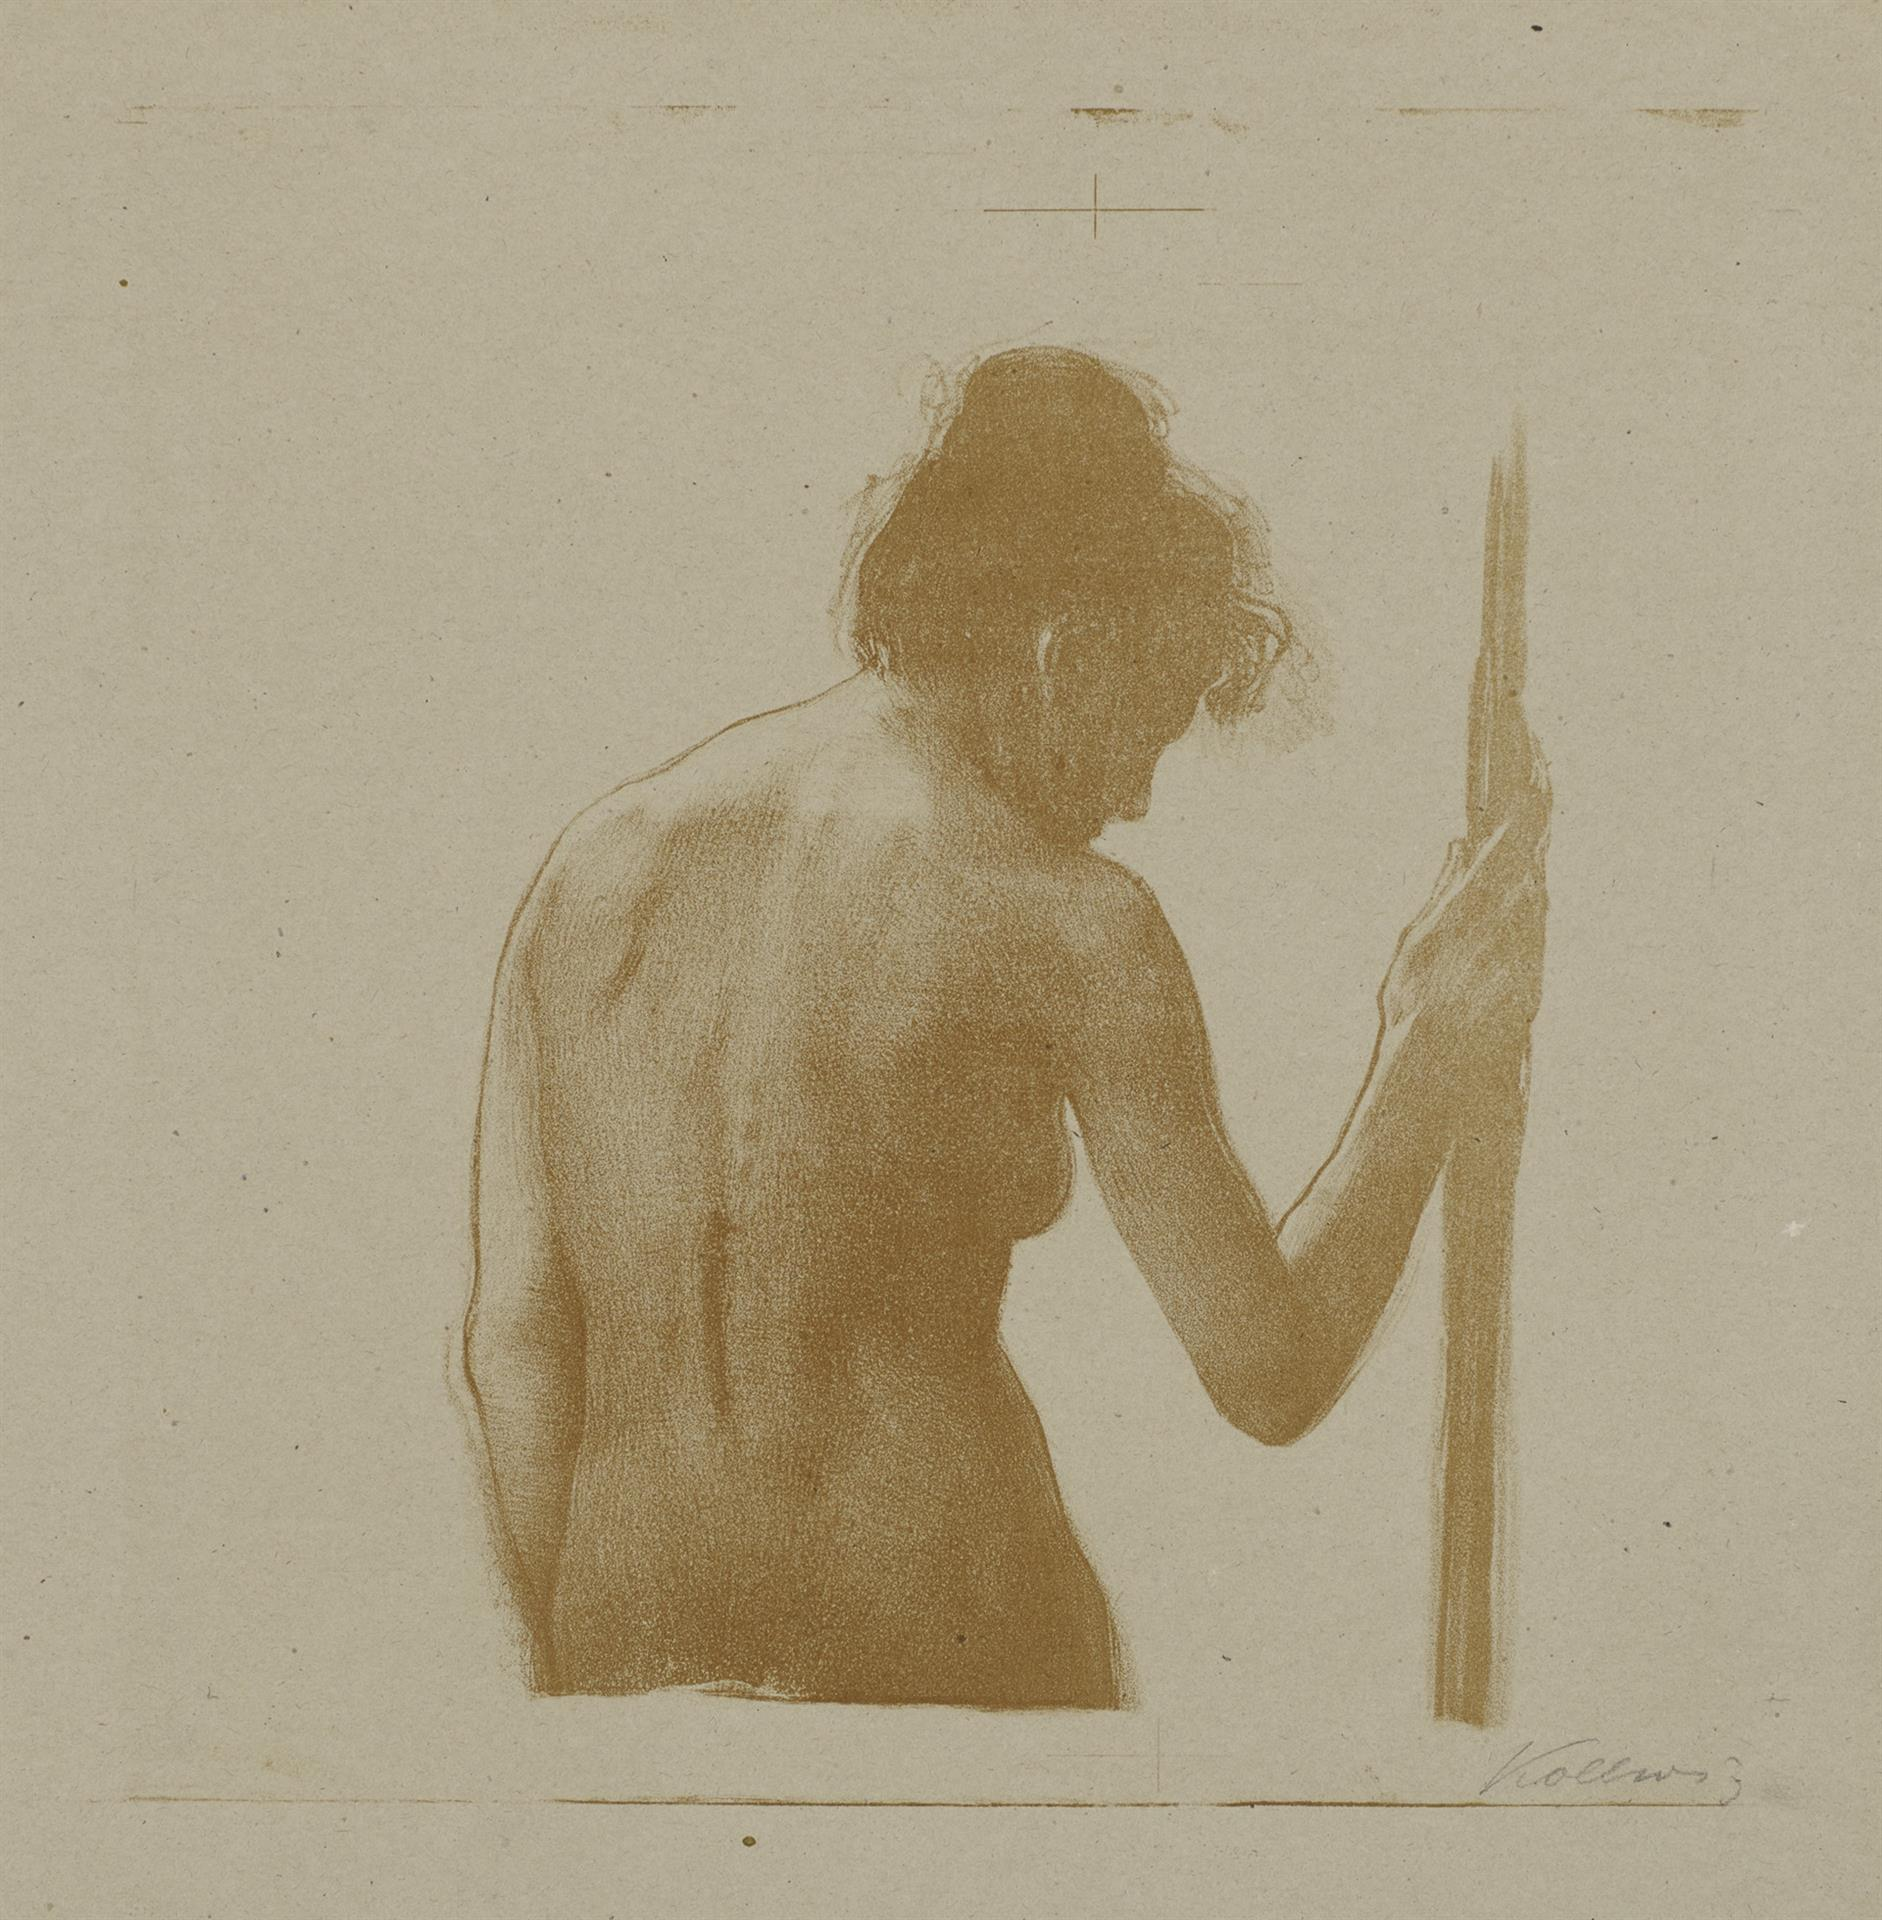 Käthe Kollwitz, Female Nude, Half-figure, with Pole, 1901?, lithograph from aluminium plates, with scratch technique in the drawing plate, reddish brown on thin Bristol cardboard, Kn 58b, Cologne Kollwitz Collection © Käthe Kollwitz Museum Köln